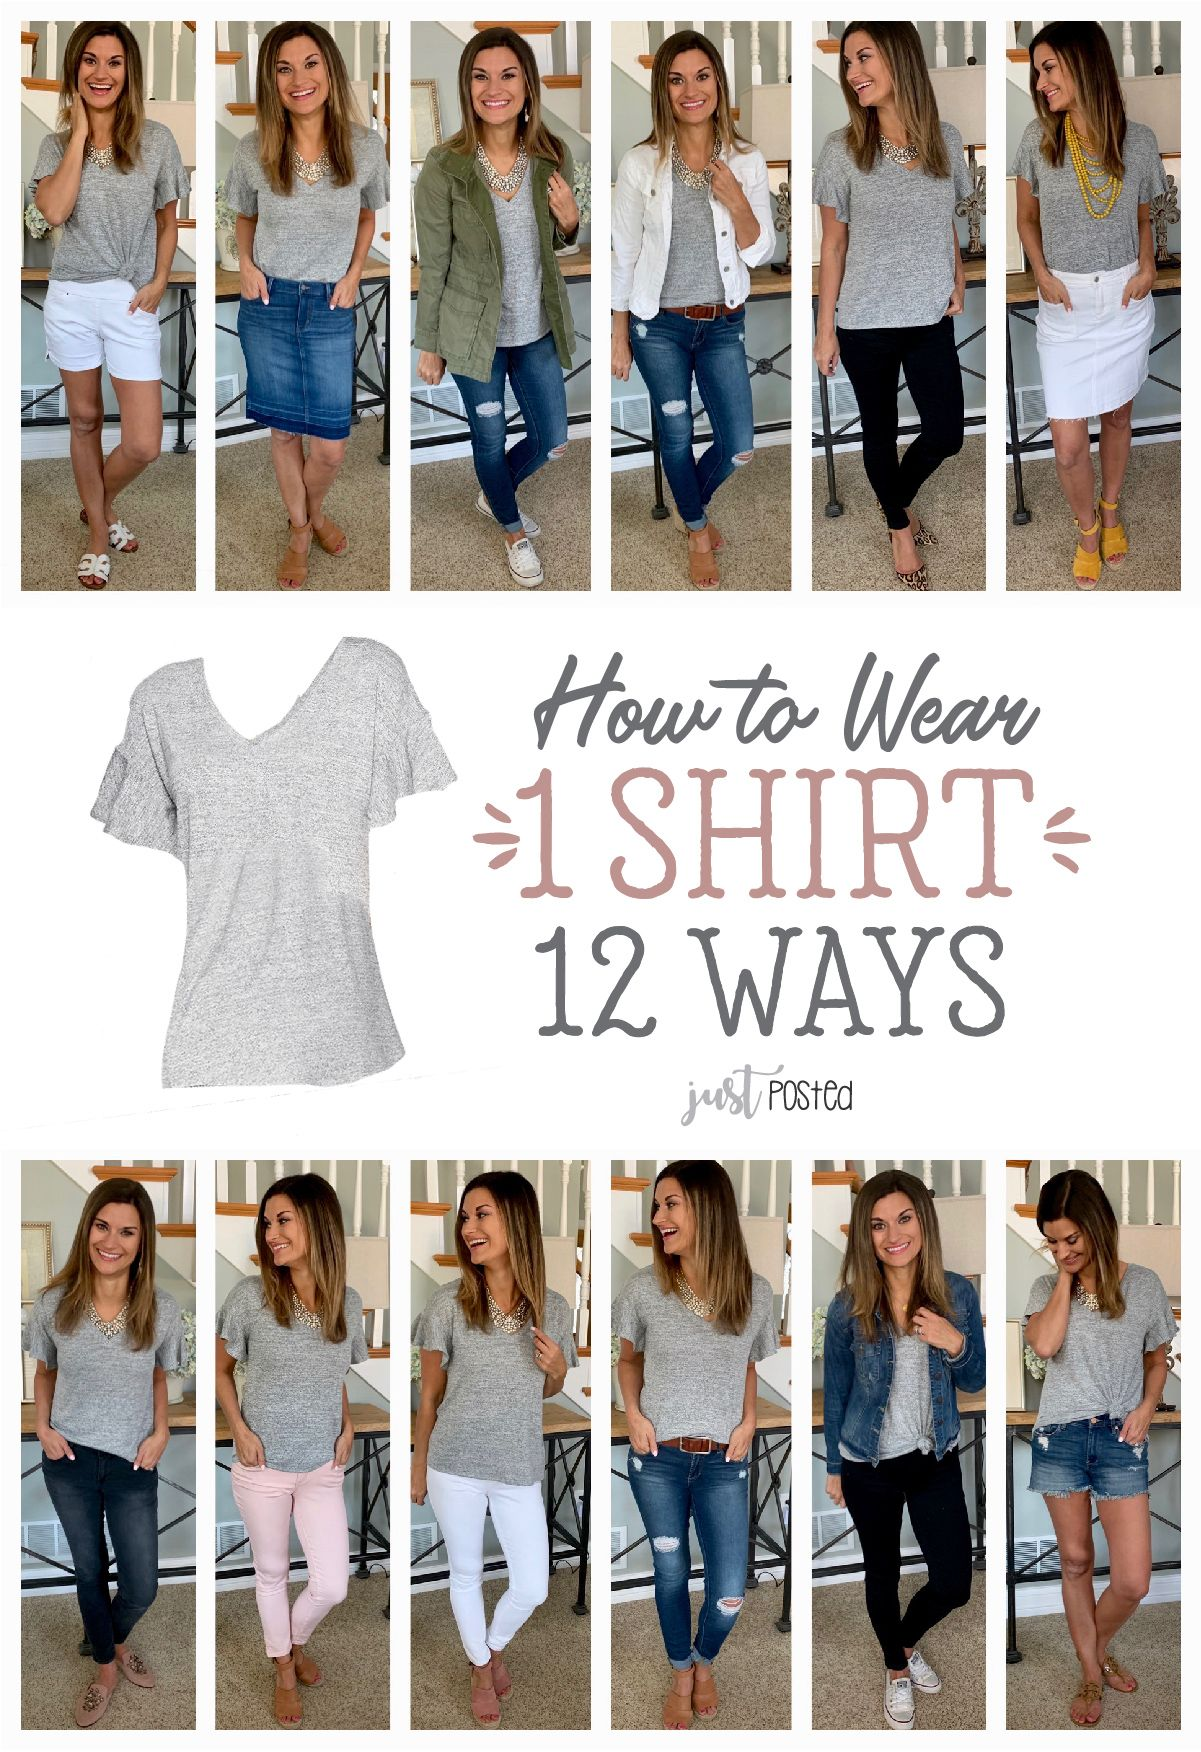 How to wear and style 1 gray shirt 12 different ways!  #howtowear